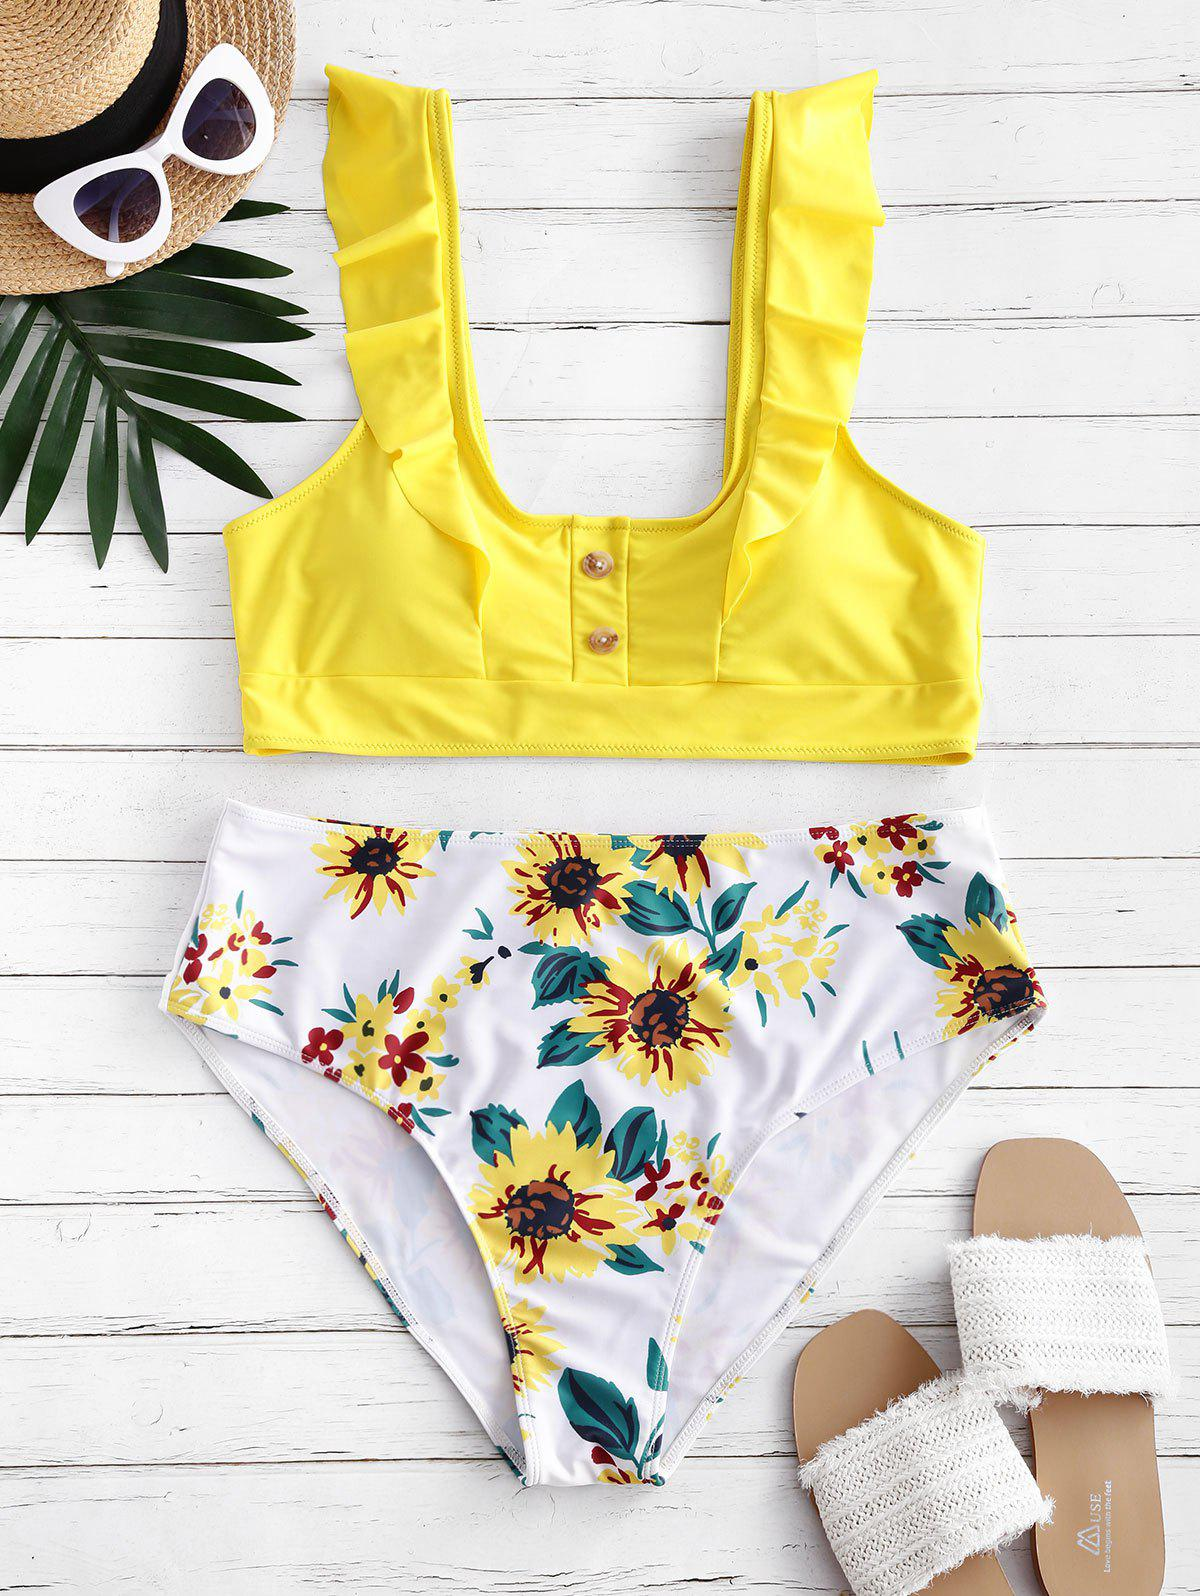 Discount Buttoned Ruffles Sunflower Plus Size Bikini Swimsuit